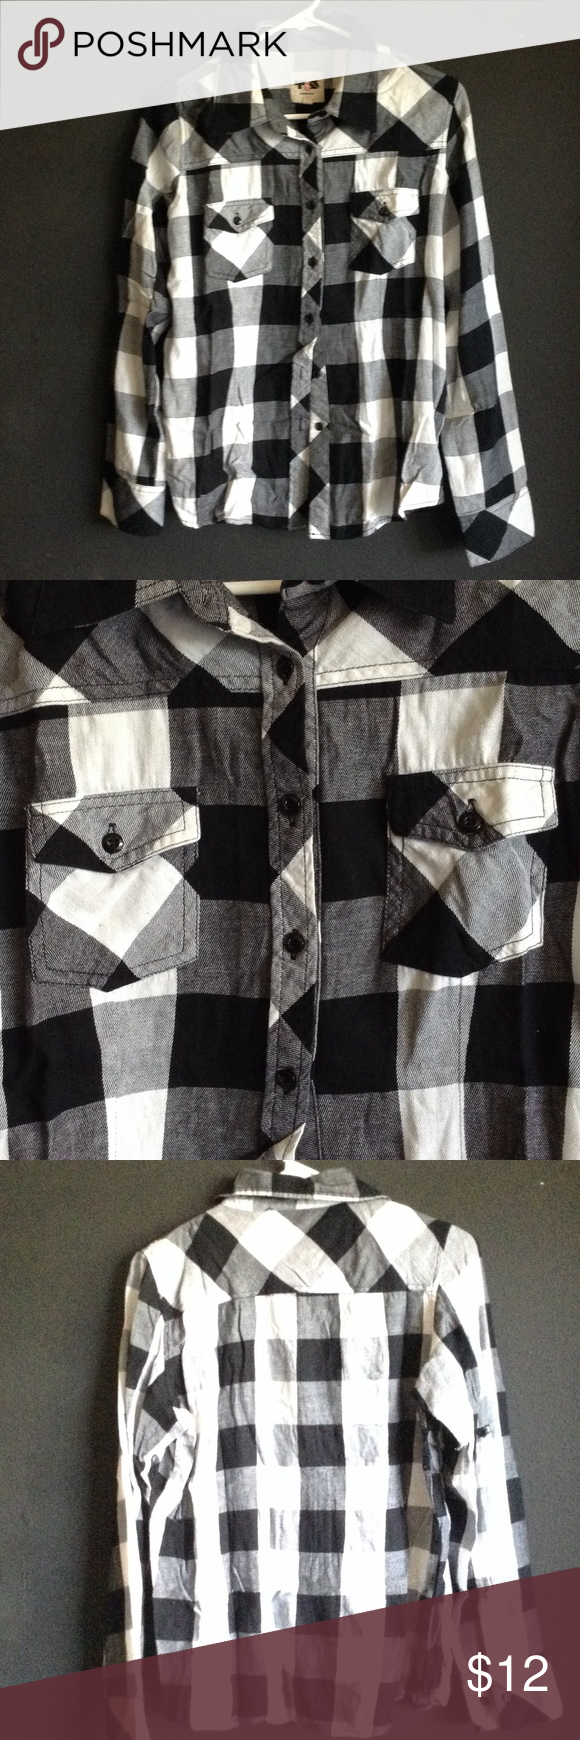 Black and white plaid shirt Gently used black and white plaid shirt Tops Button Down Shirts